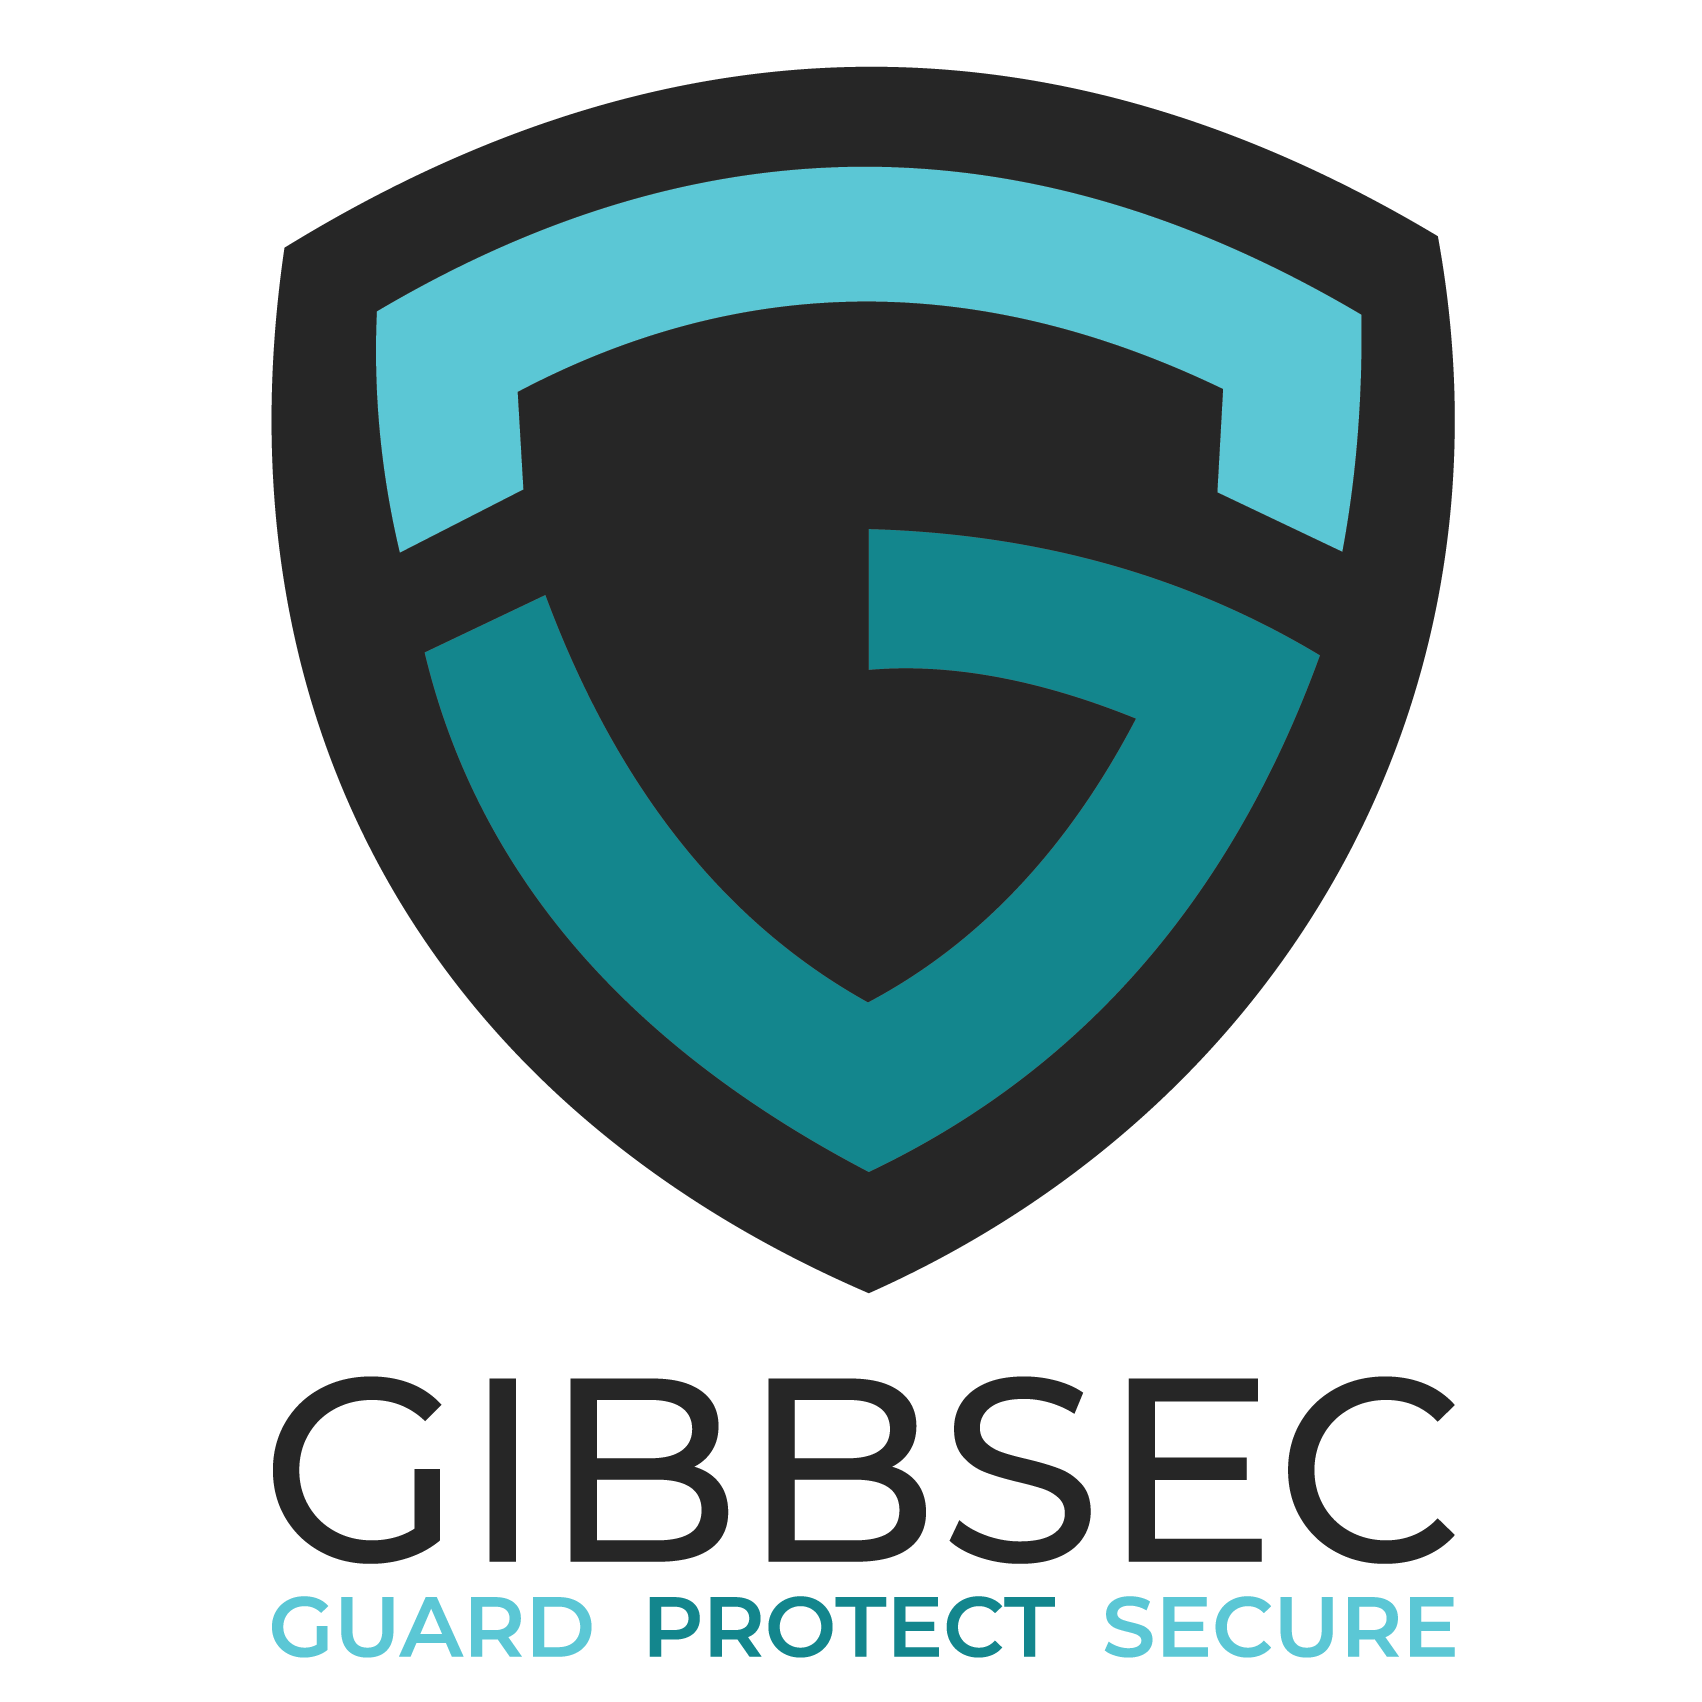 Gibbsec Security Services across Larne